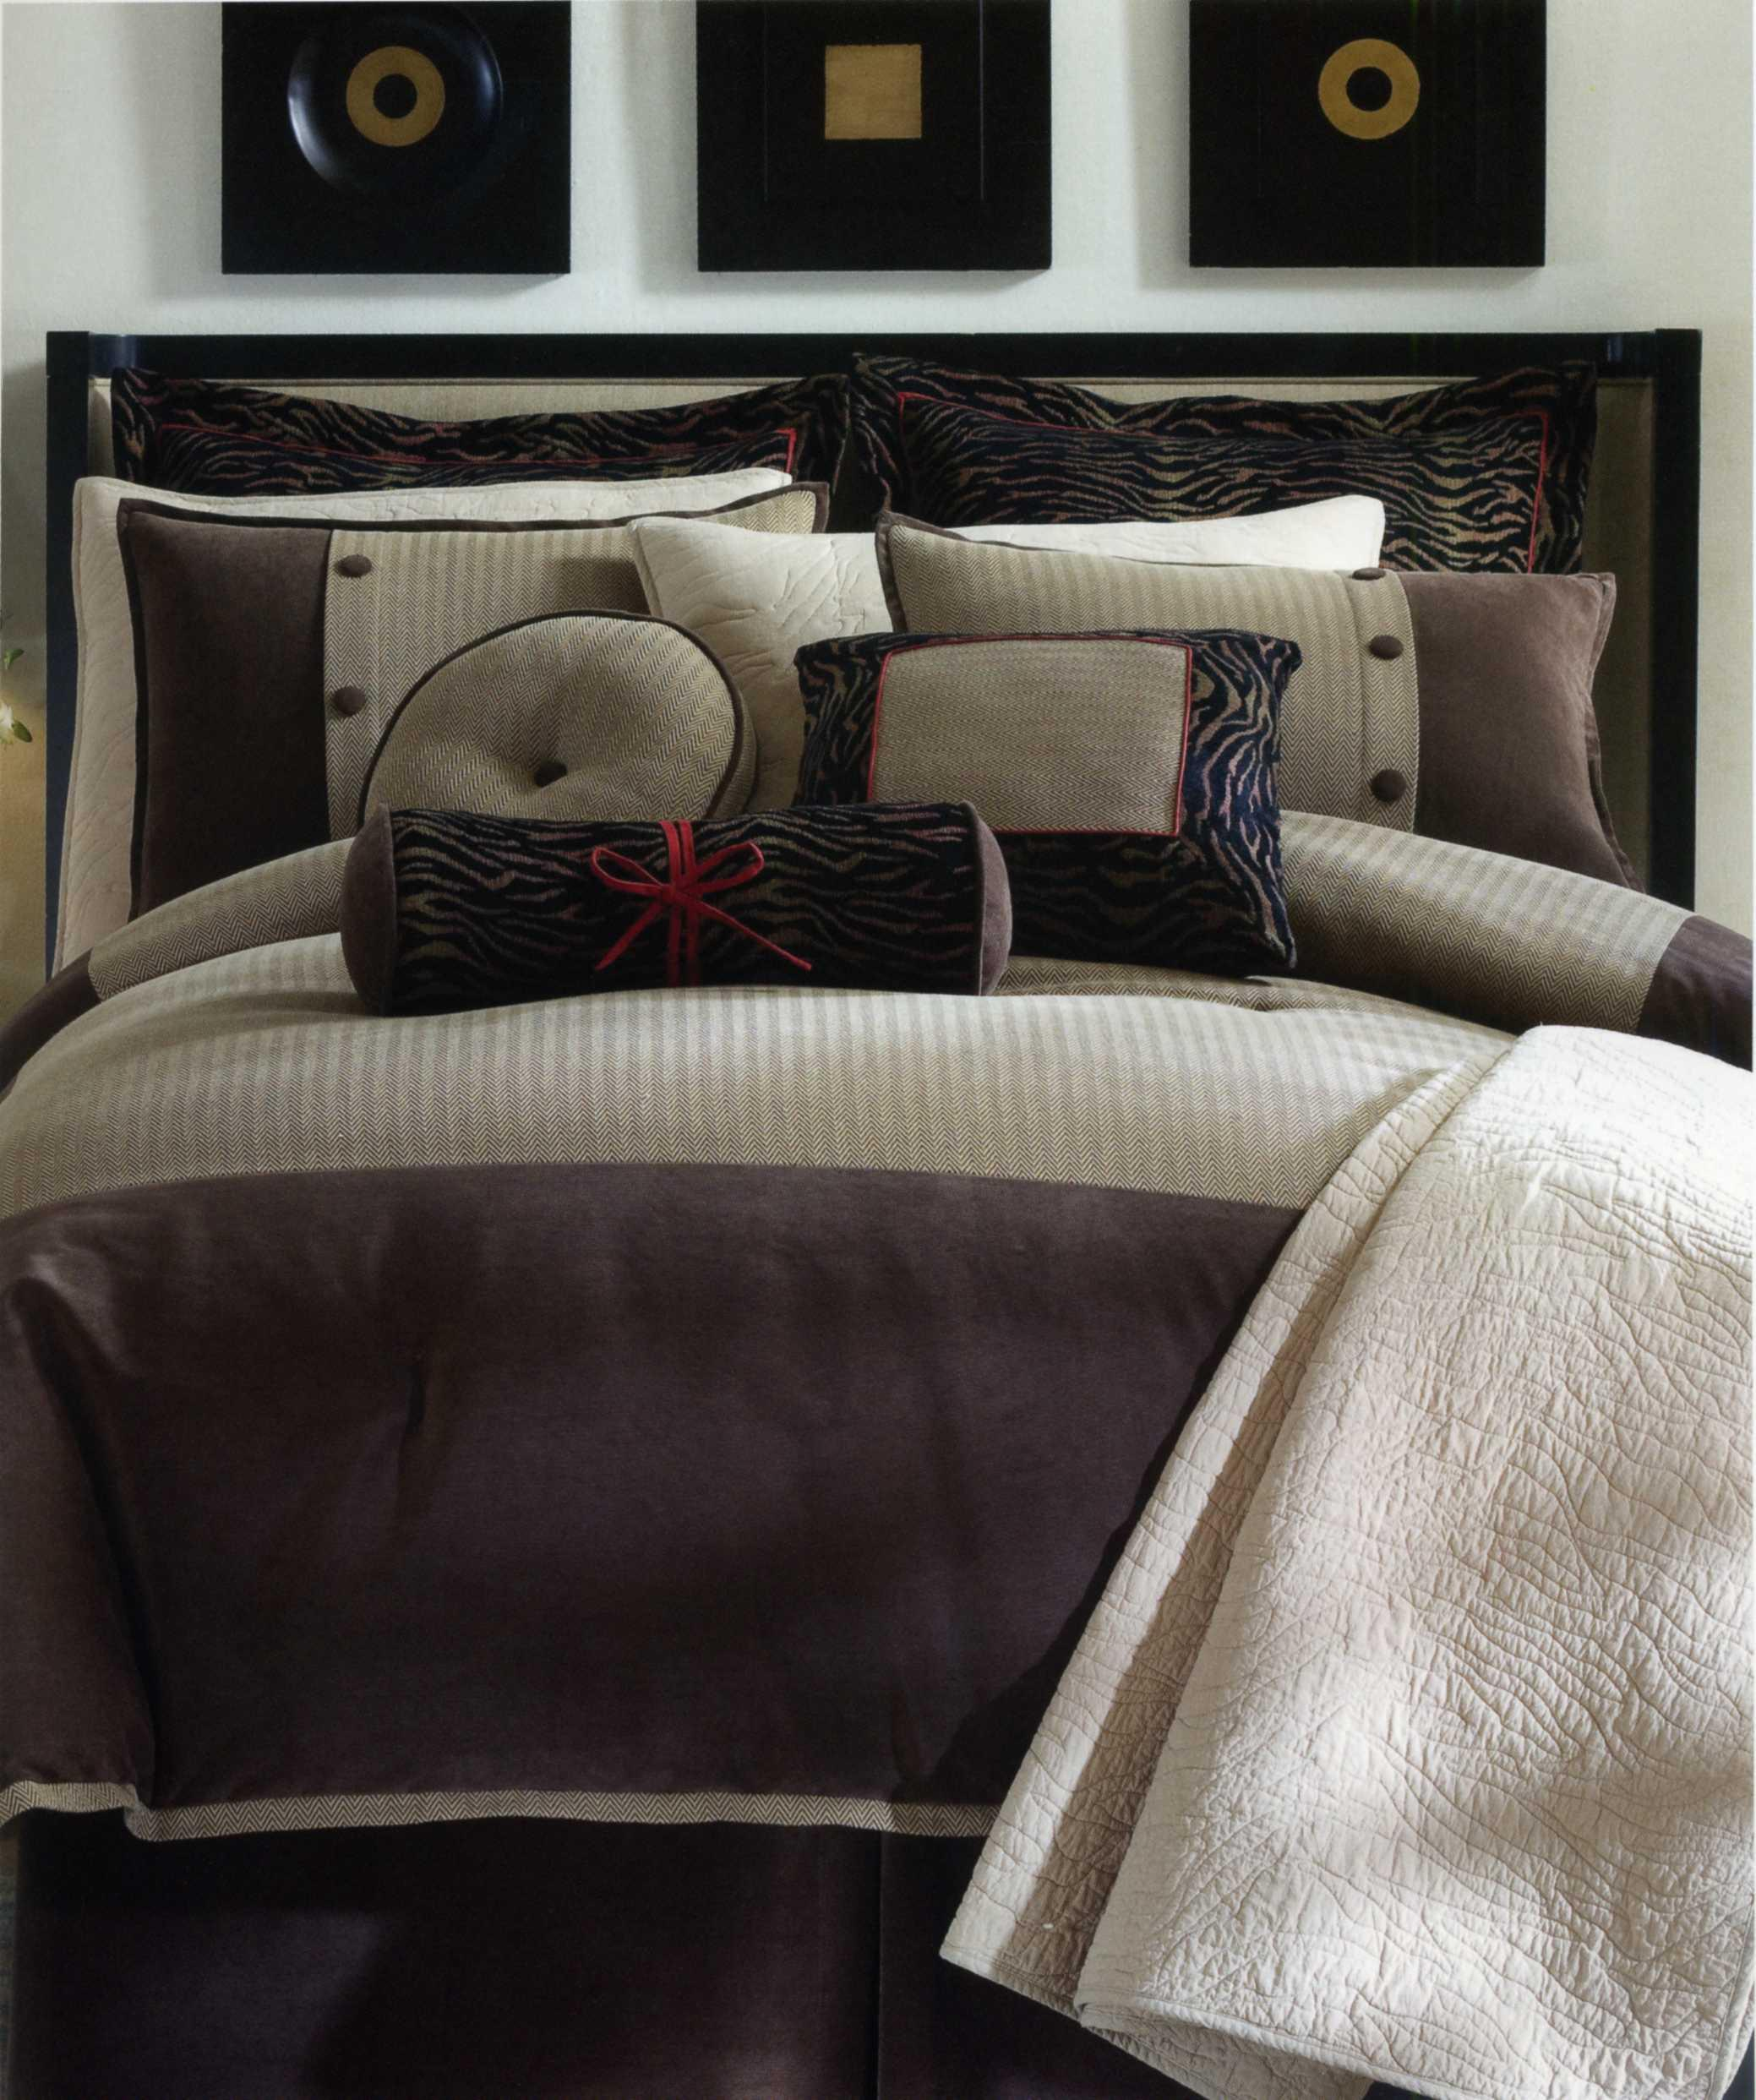 durban comforter set interiordecorating. Black Bedroom Furniture Sets. Home Design Ideas